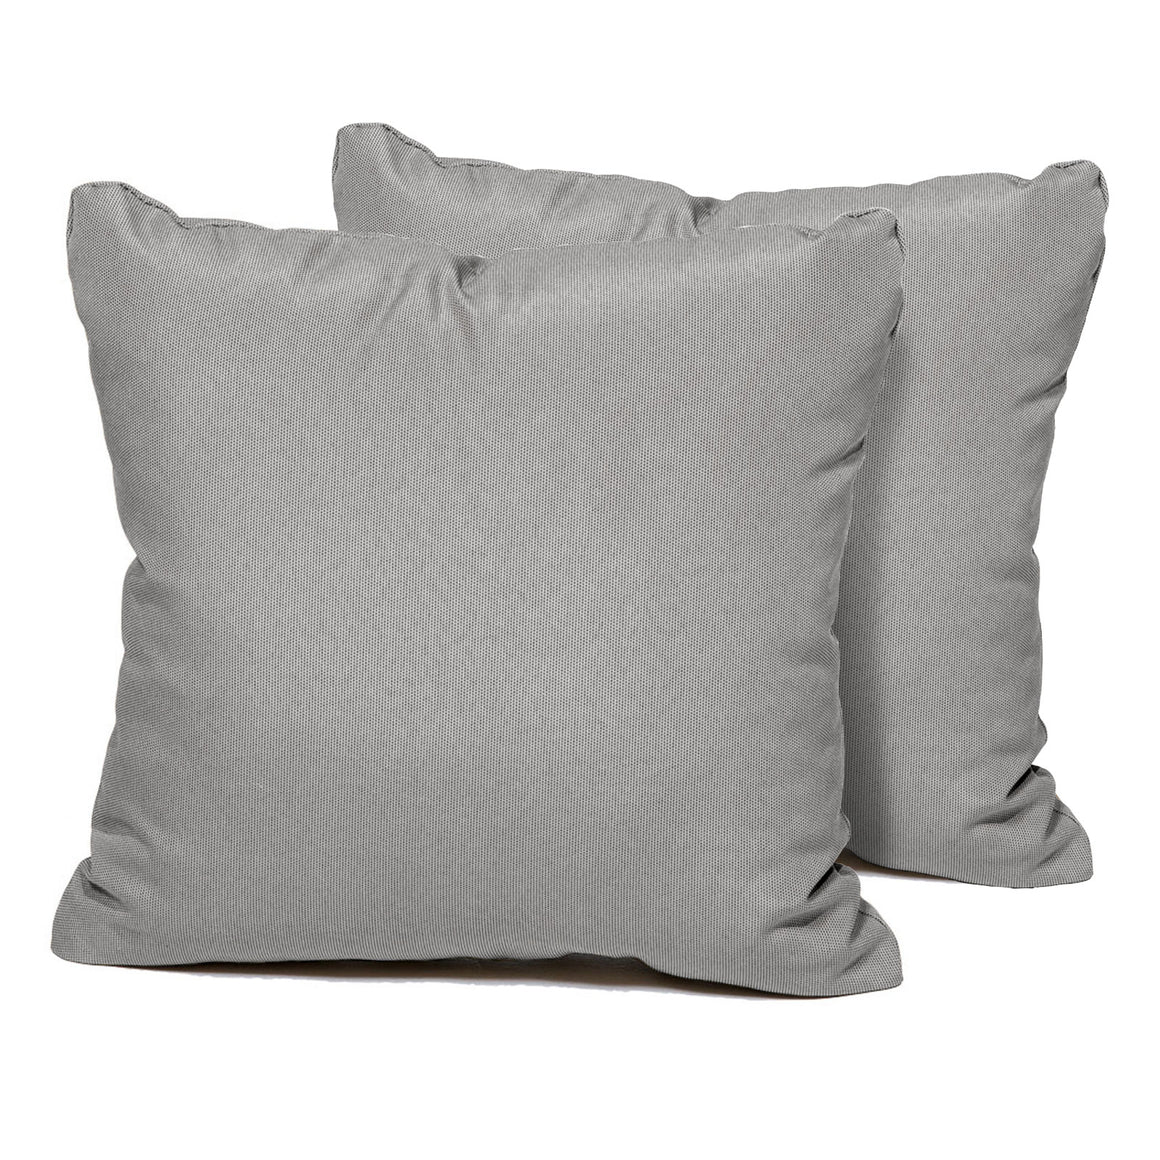 Grey Outdoor Throw Pillows Square Set of 2 , TK Classics- grayburd